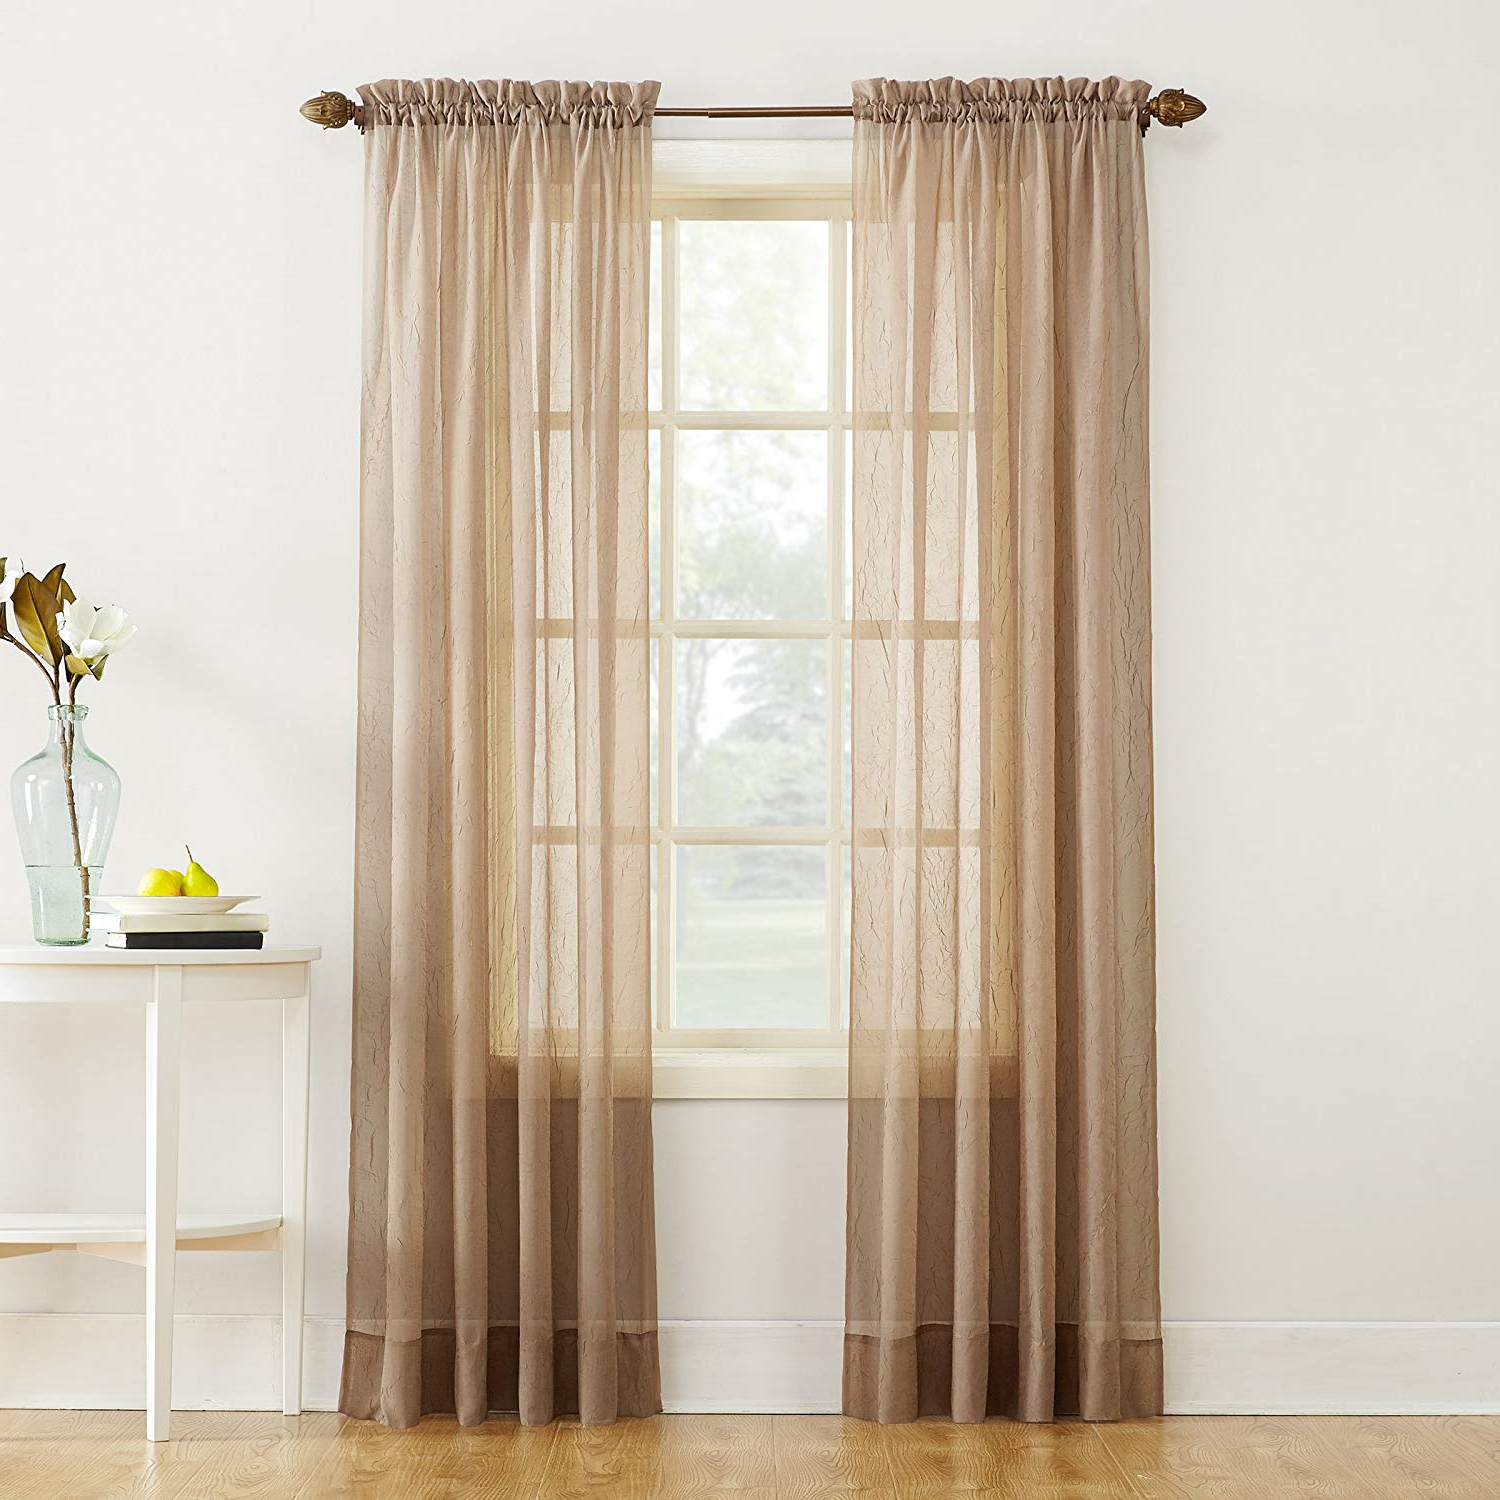 "Erica Crushed Sheer Voile Grommet Curtain Panels Pertaining To Most Current No. 918 Erica Crushed Texture Sheer Voile Rod Pocket Curtain Panel, 51"" X  84"", Taupe (Gallery 8 of 20)"